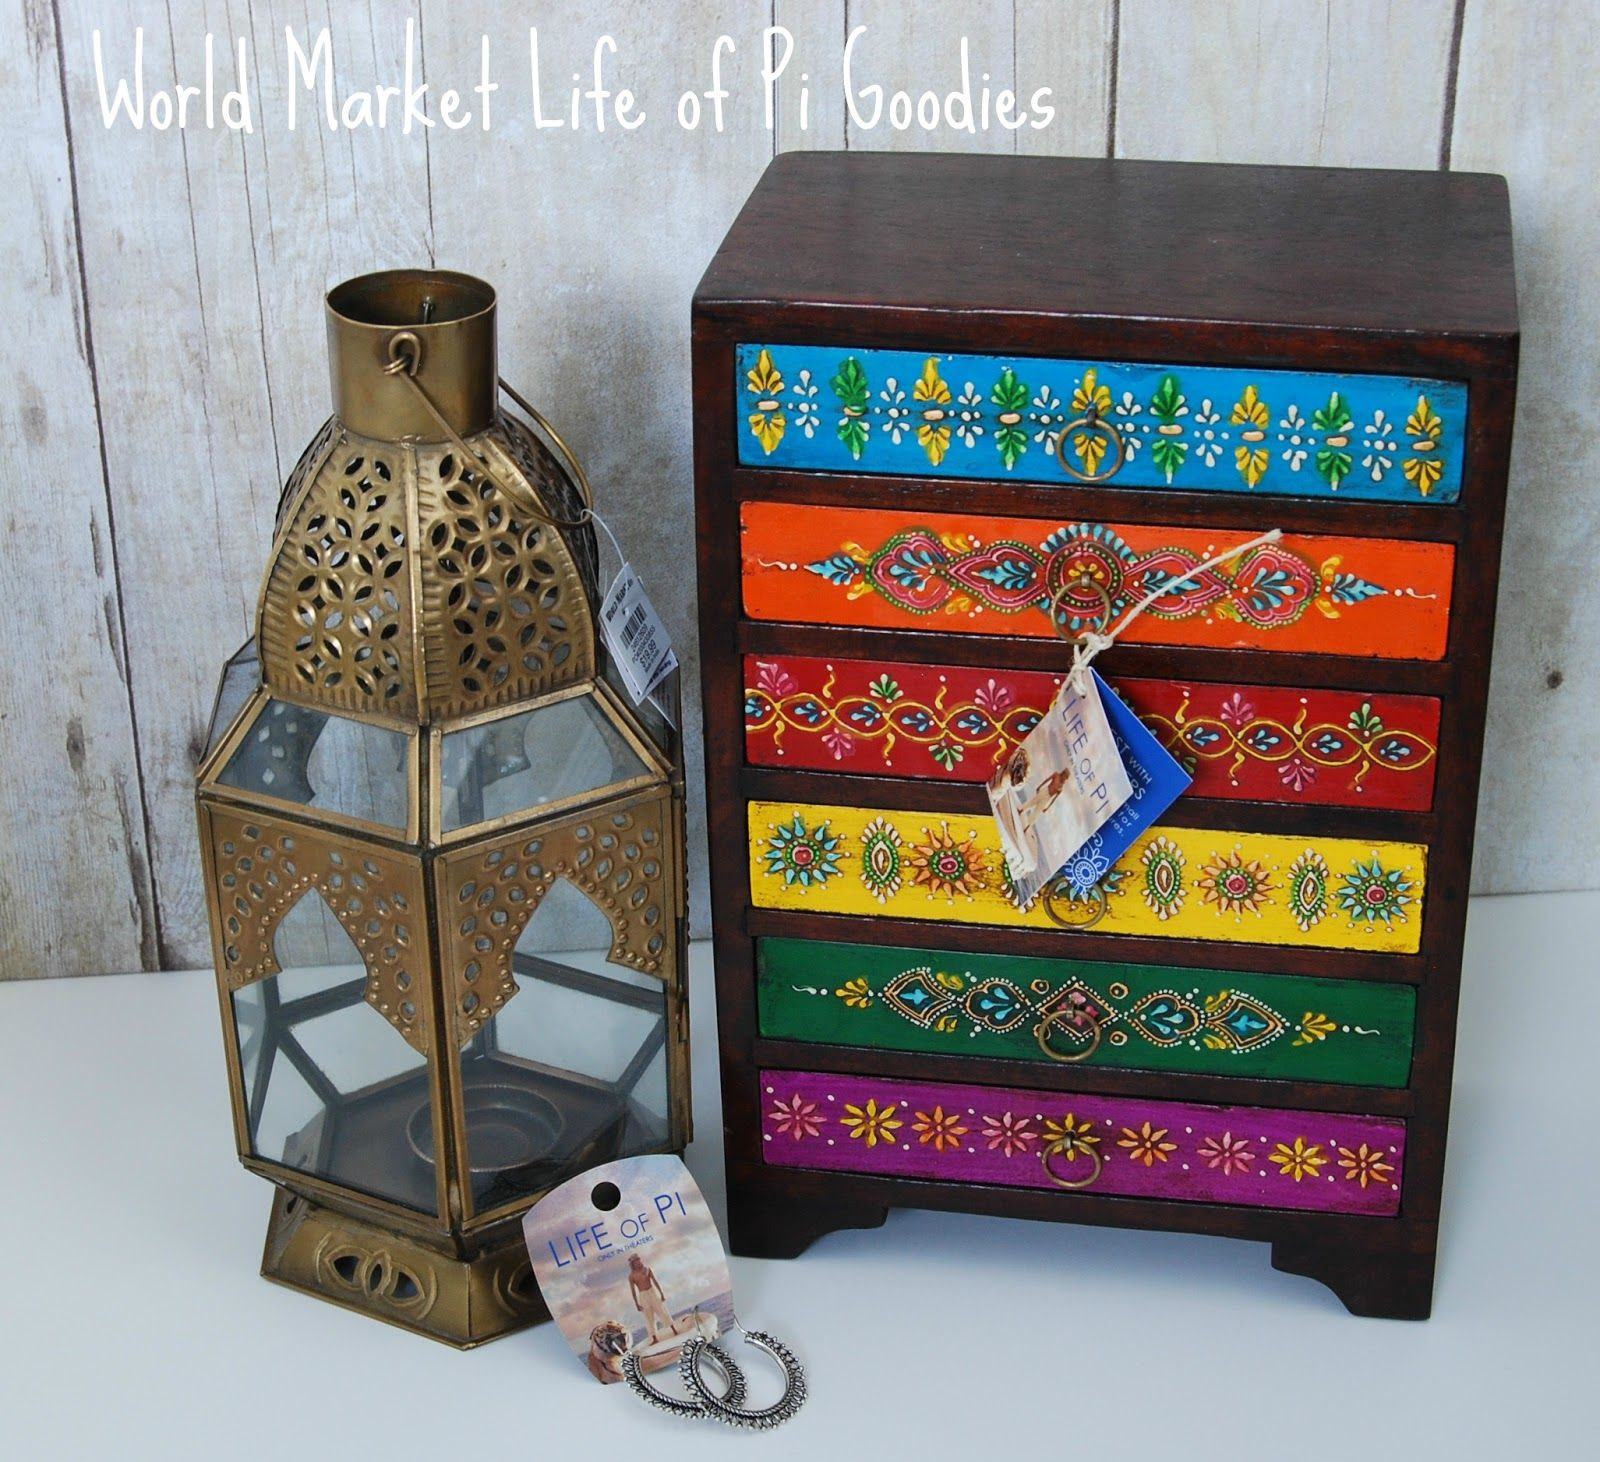 World Market Jewelry Box Gorgeous Worldmarketlifeofpipurchases 1600×1462  Kdeb  Pinterest Decorating Design